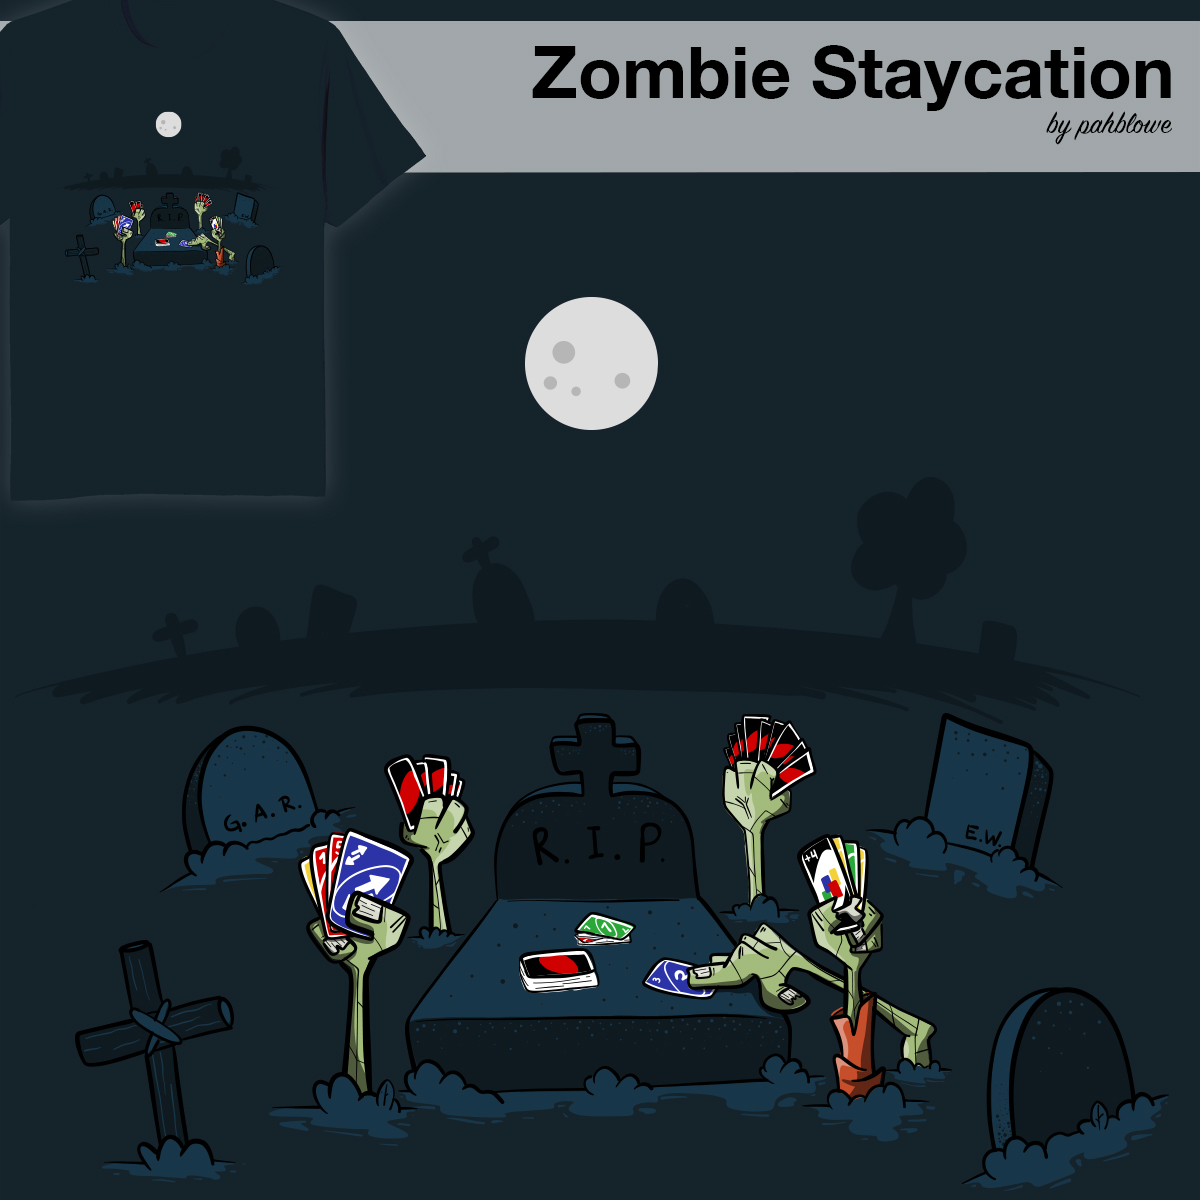 Zombie Staycation